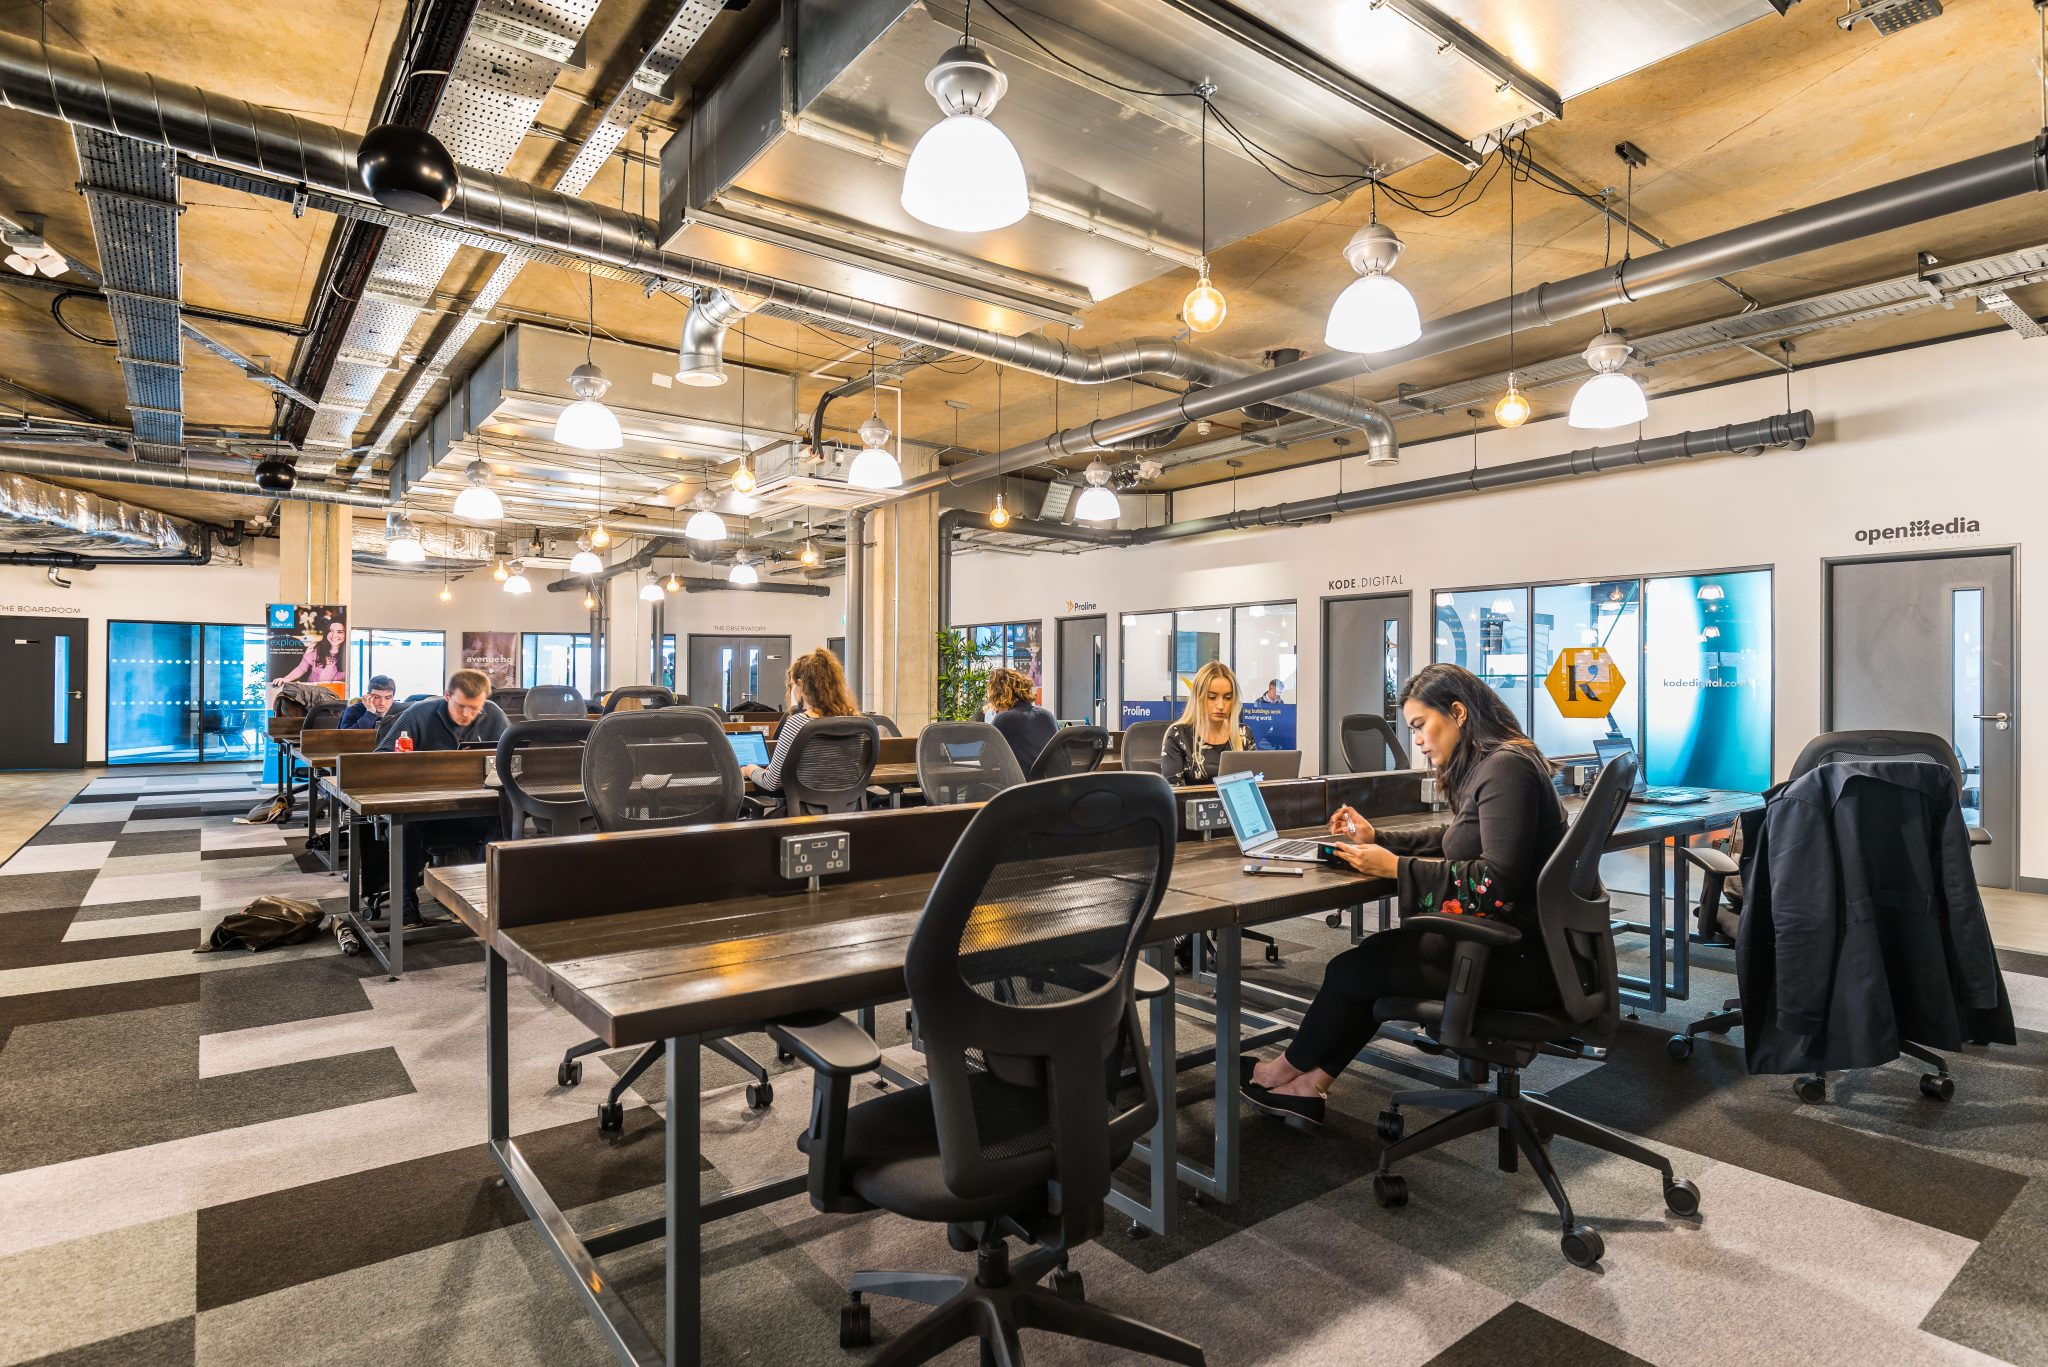 Coworking – Is It Just A Buzzword?